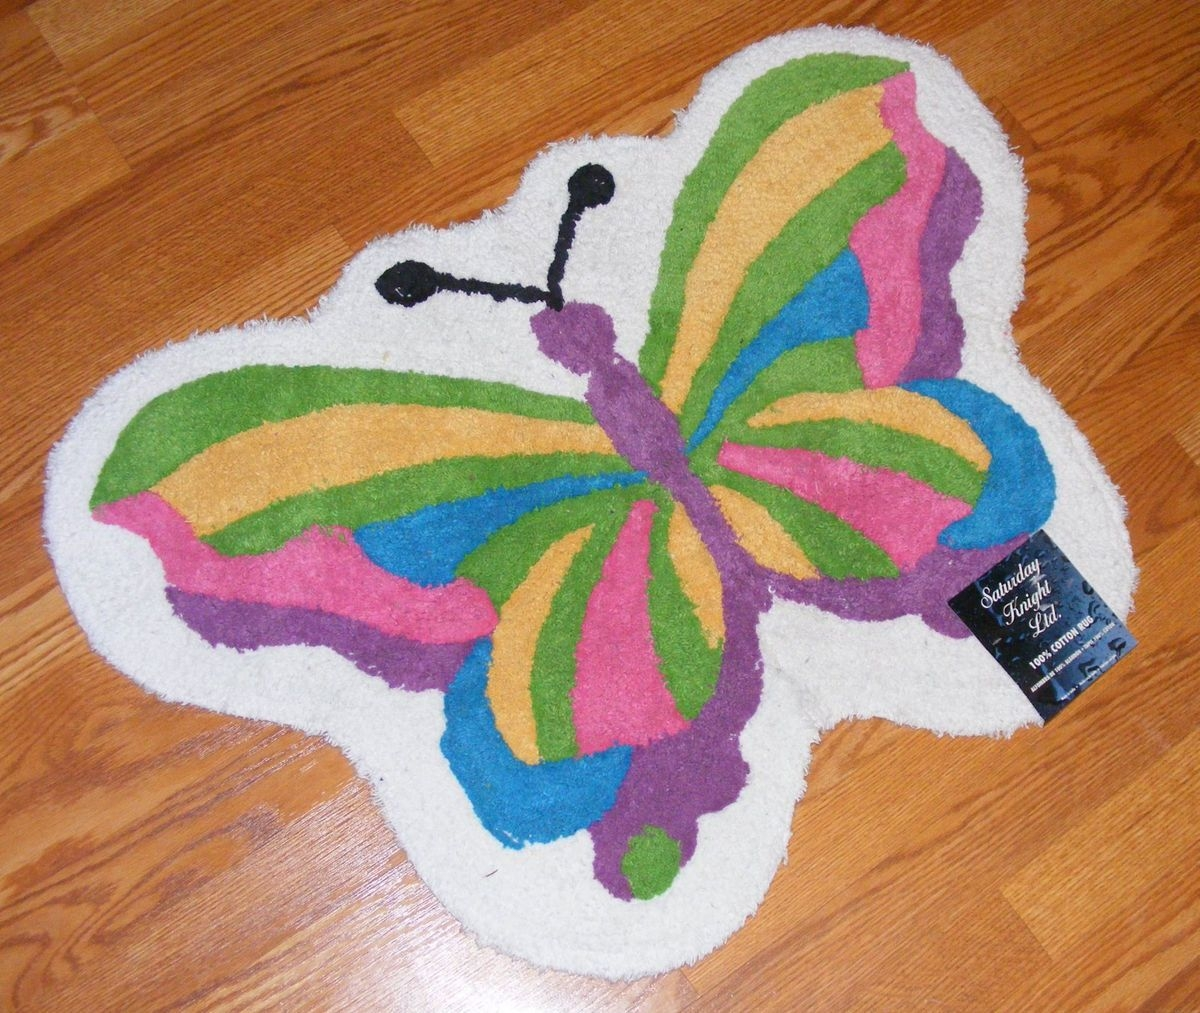 Butterfly Shaped Bath Rugrainbow butterfly shaped bath rug saturday knight 24x33 100 cotton